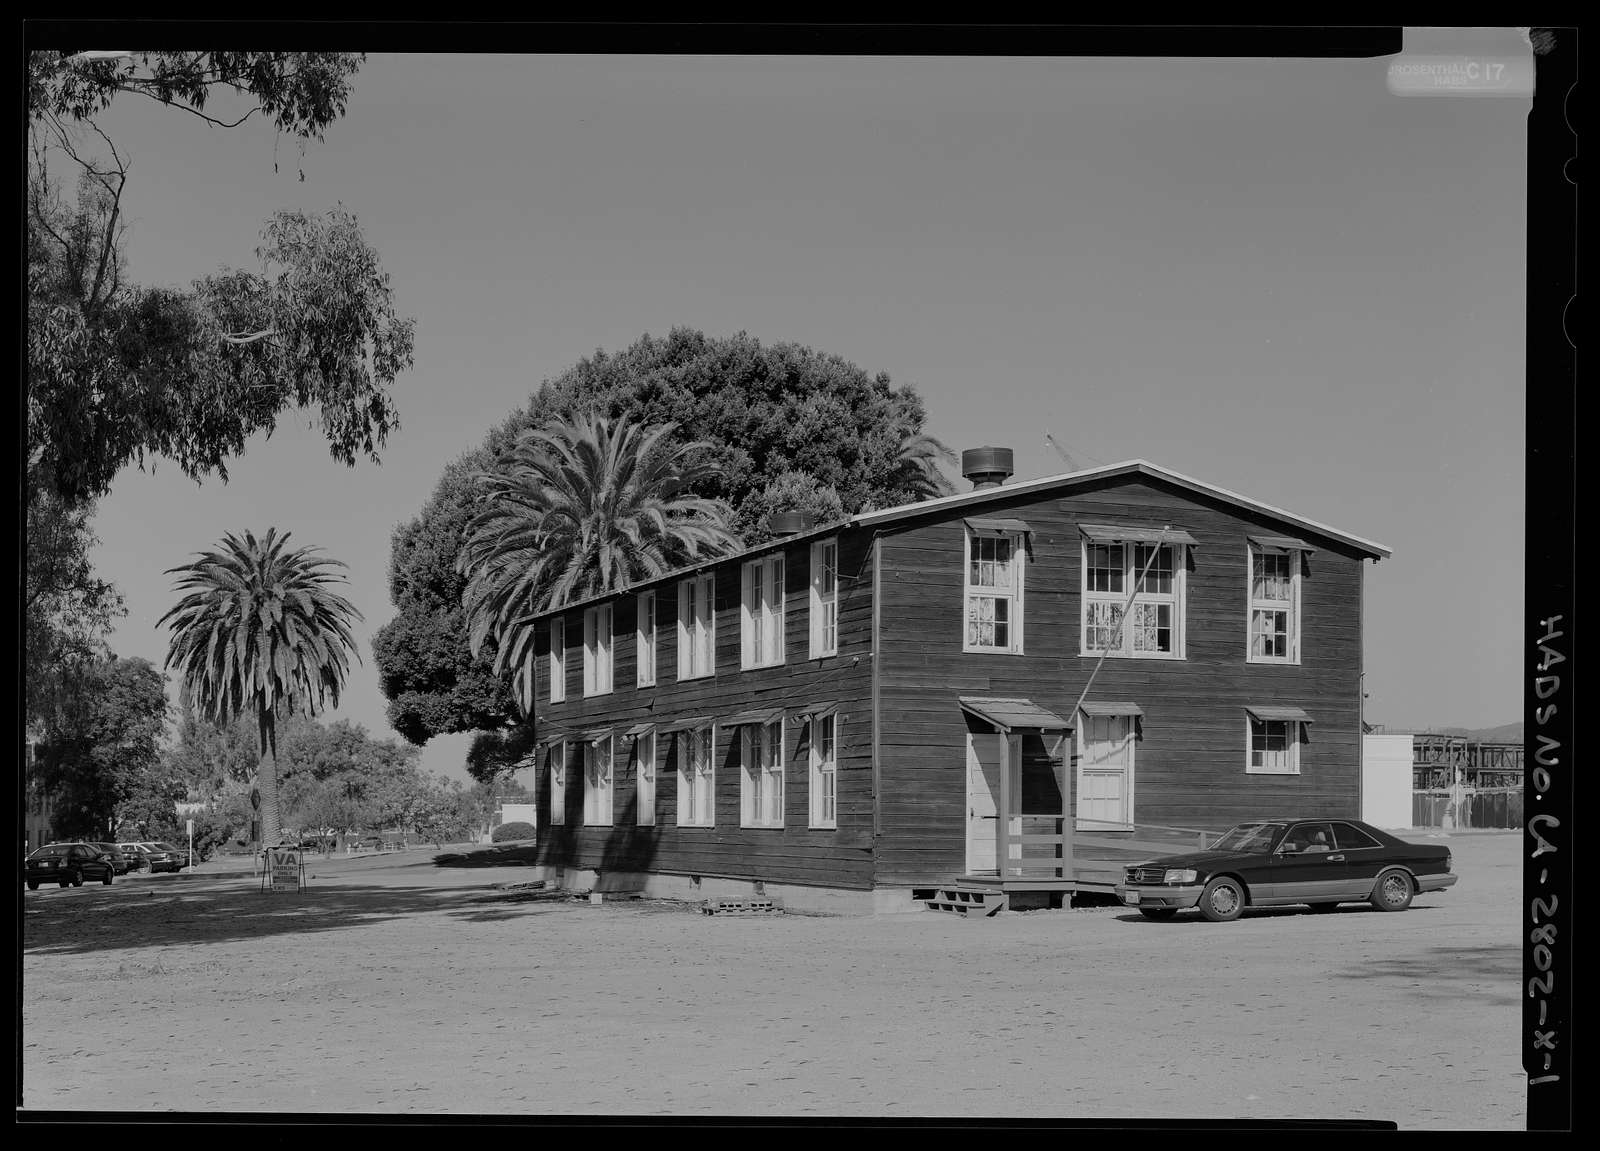 National Home for Disabled Volunteer Soldiers, Pacific Branch, Hoover Baracks, 11301 Wilshire Boulevard, West Los Angeles, Los Angeles County, CA